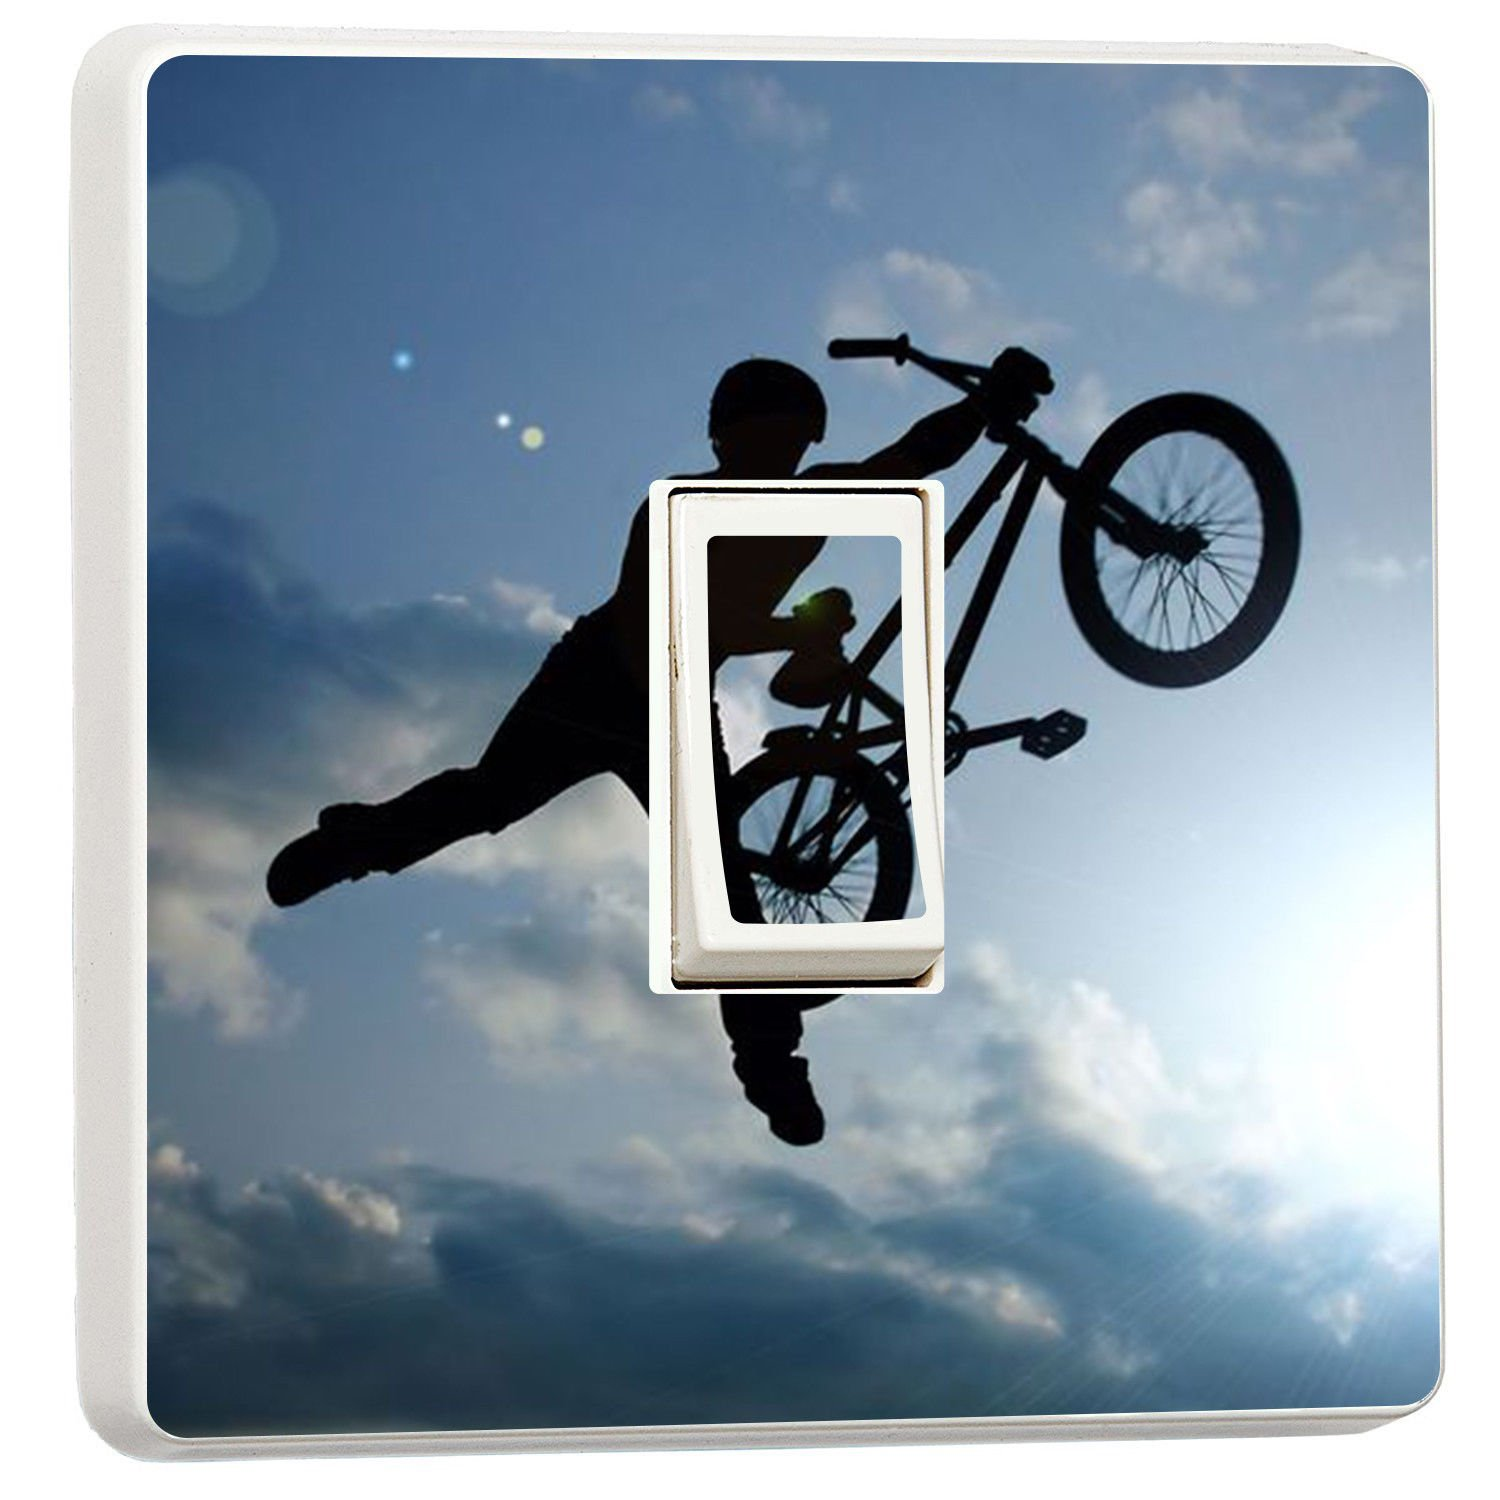 BMX Bike rider photo light switch sticker cover (5036944) Teenager bedroom wmoltdTM